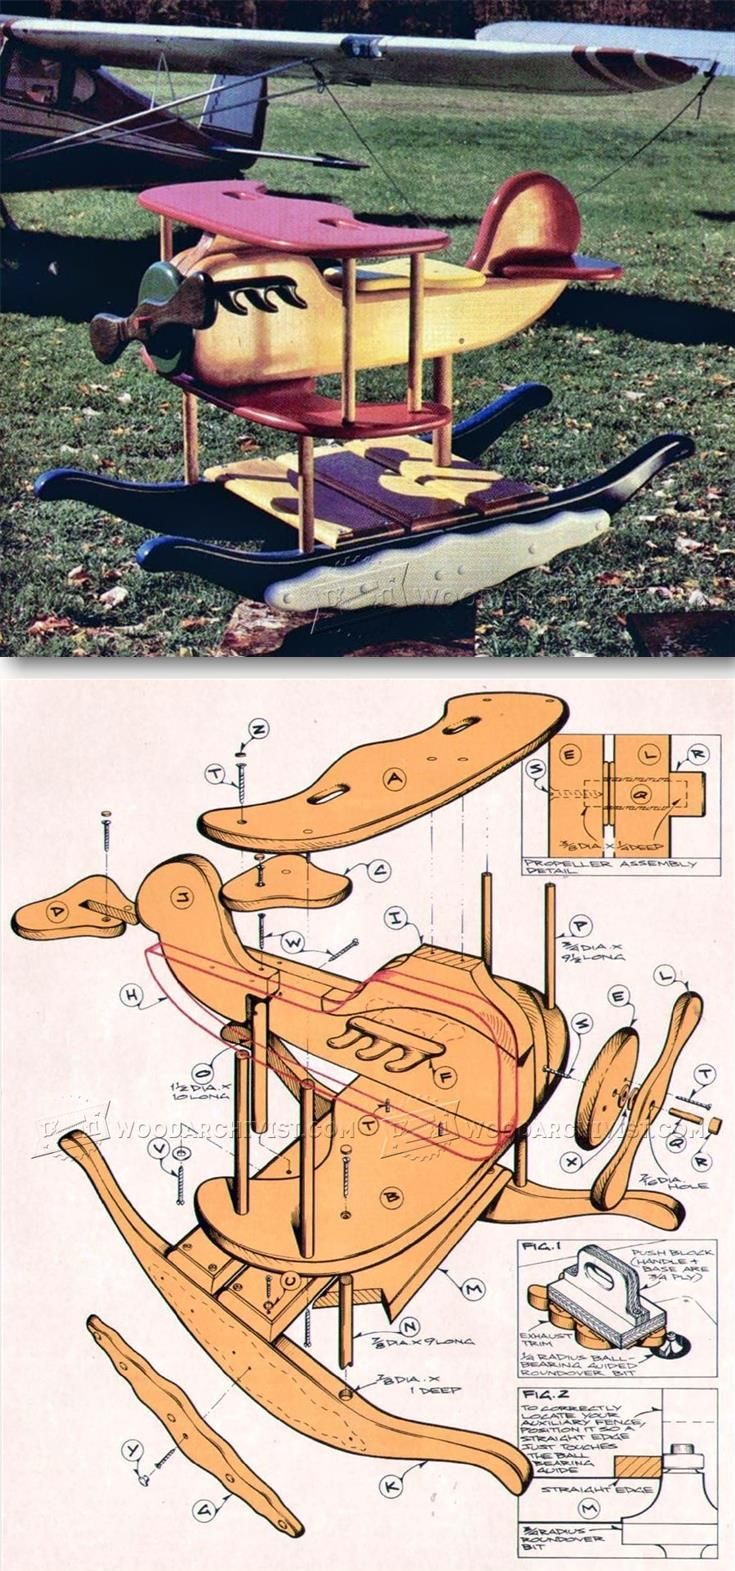 Rocking Airplane Plans - Children's Woodworking Plans and Projects | WoodArchivist.com